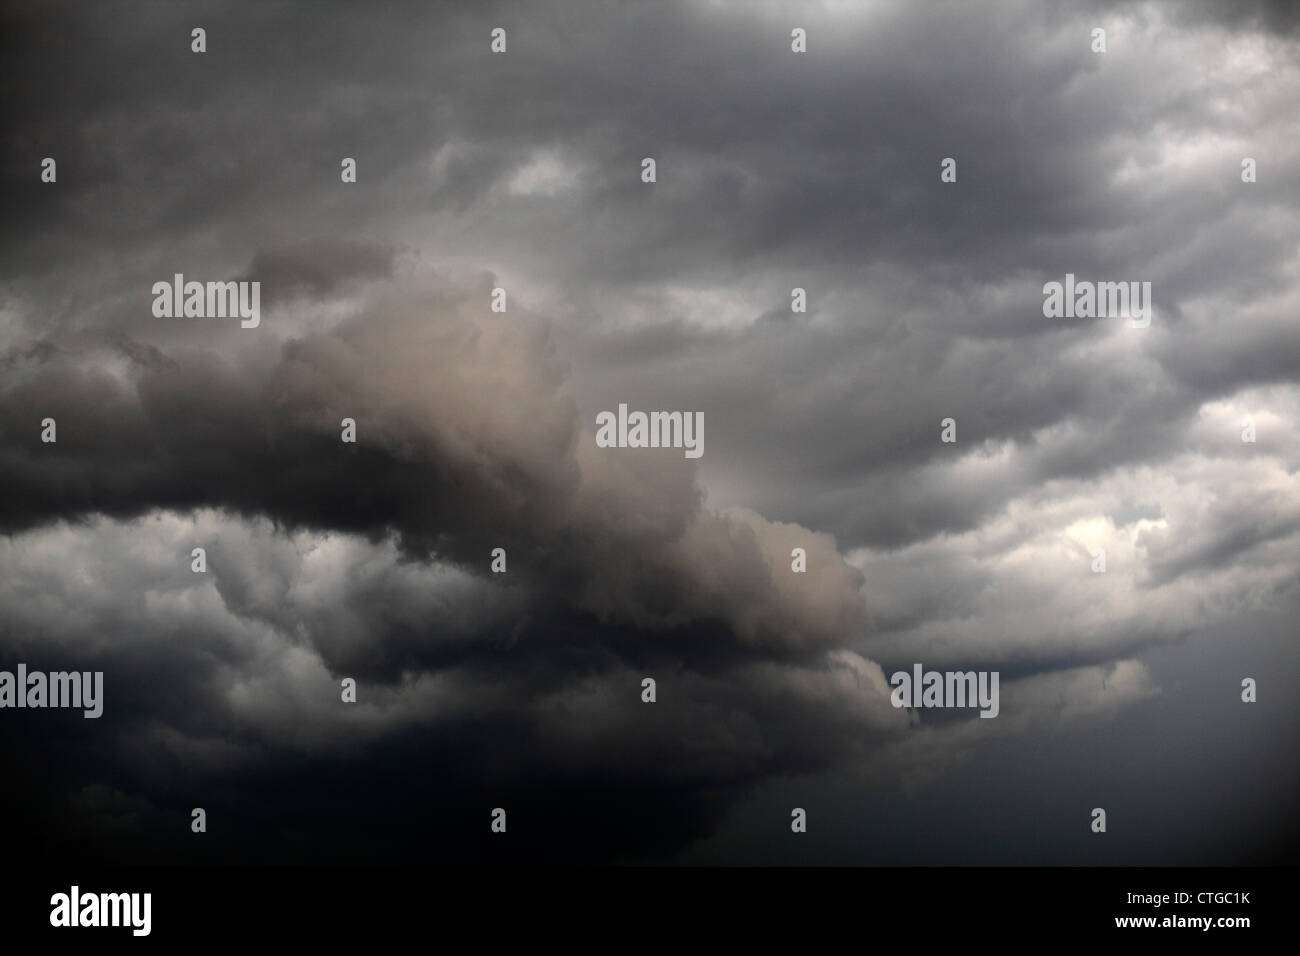 Squall line clouds, racing against each other in the sky. - Stock Image